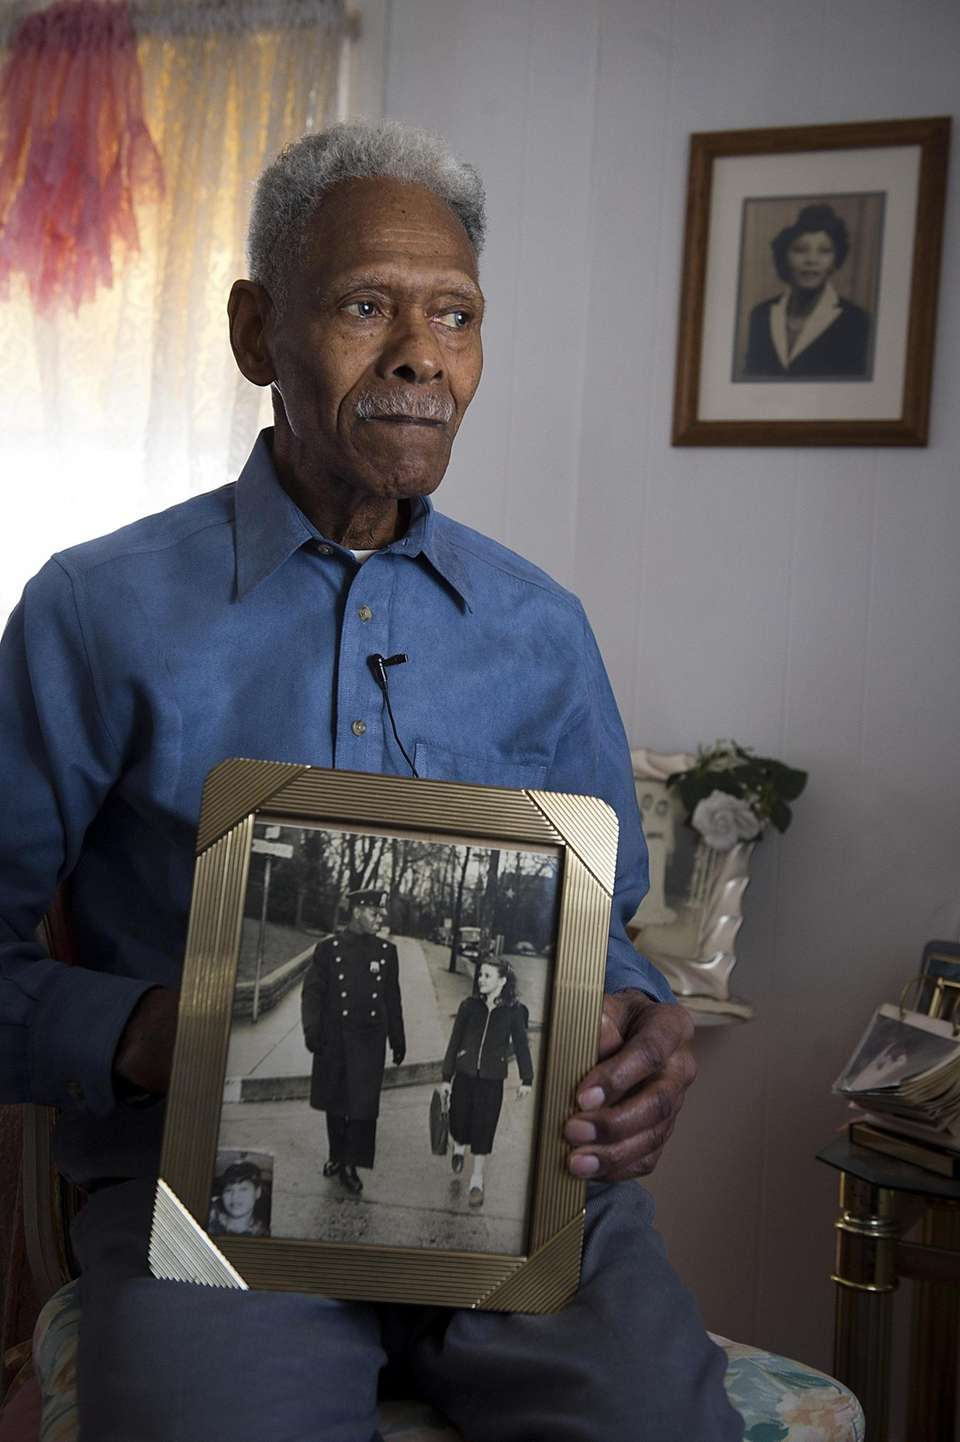 In 1949, Richard Robertson became the first African-American